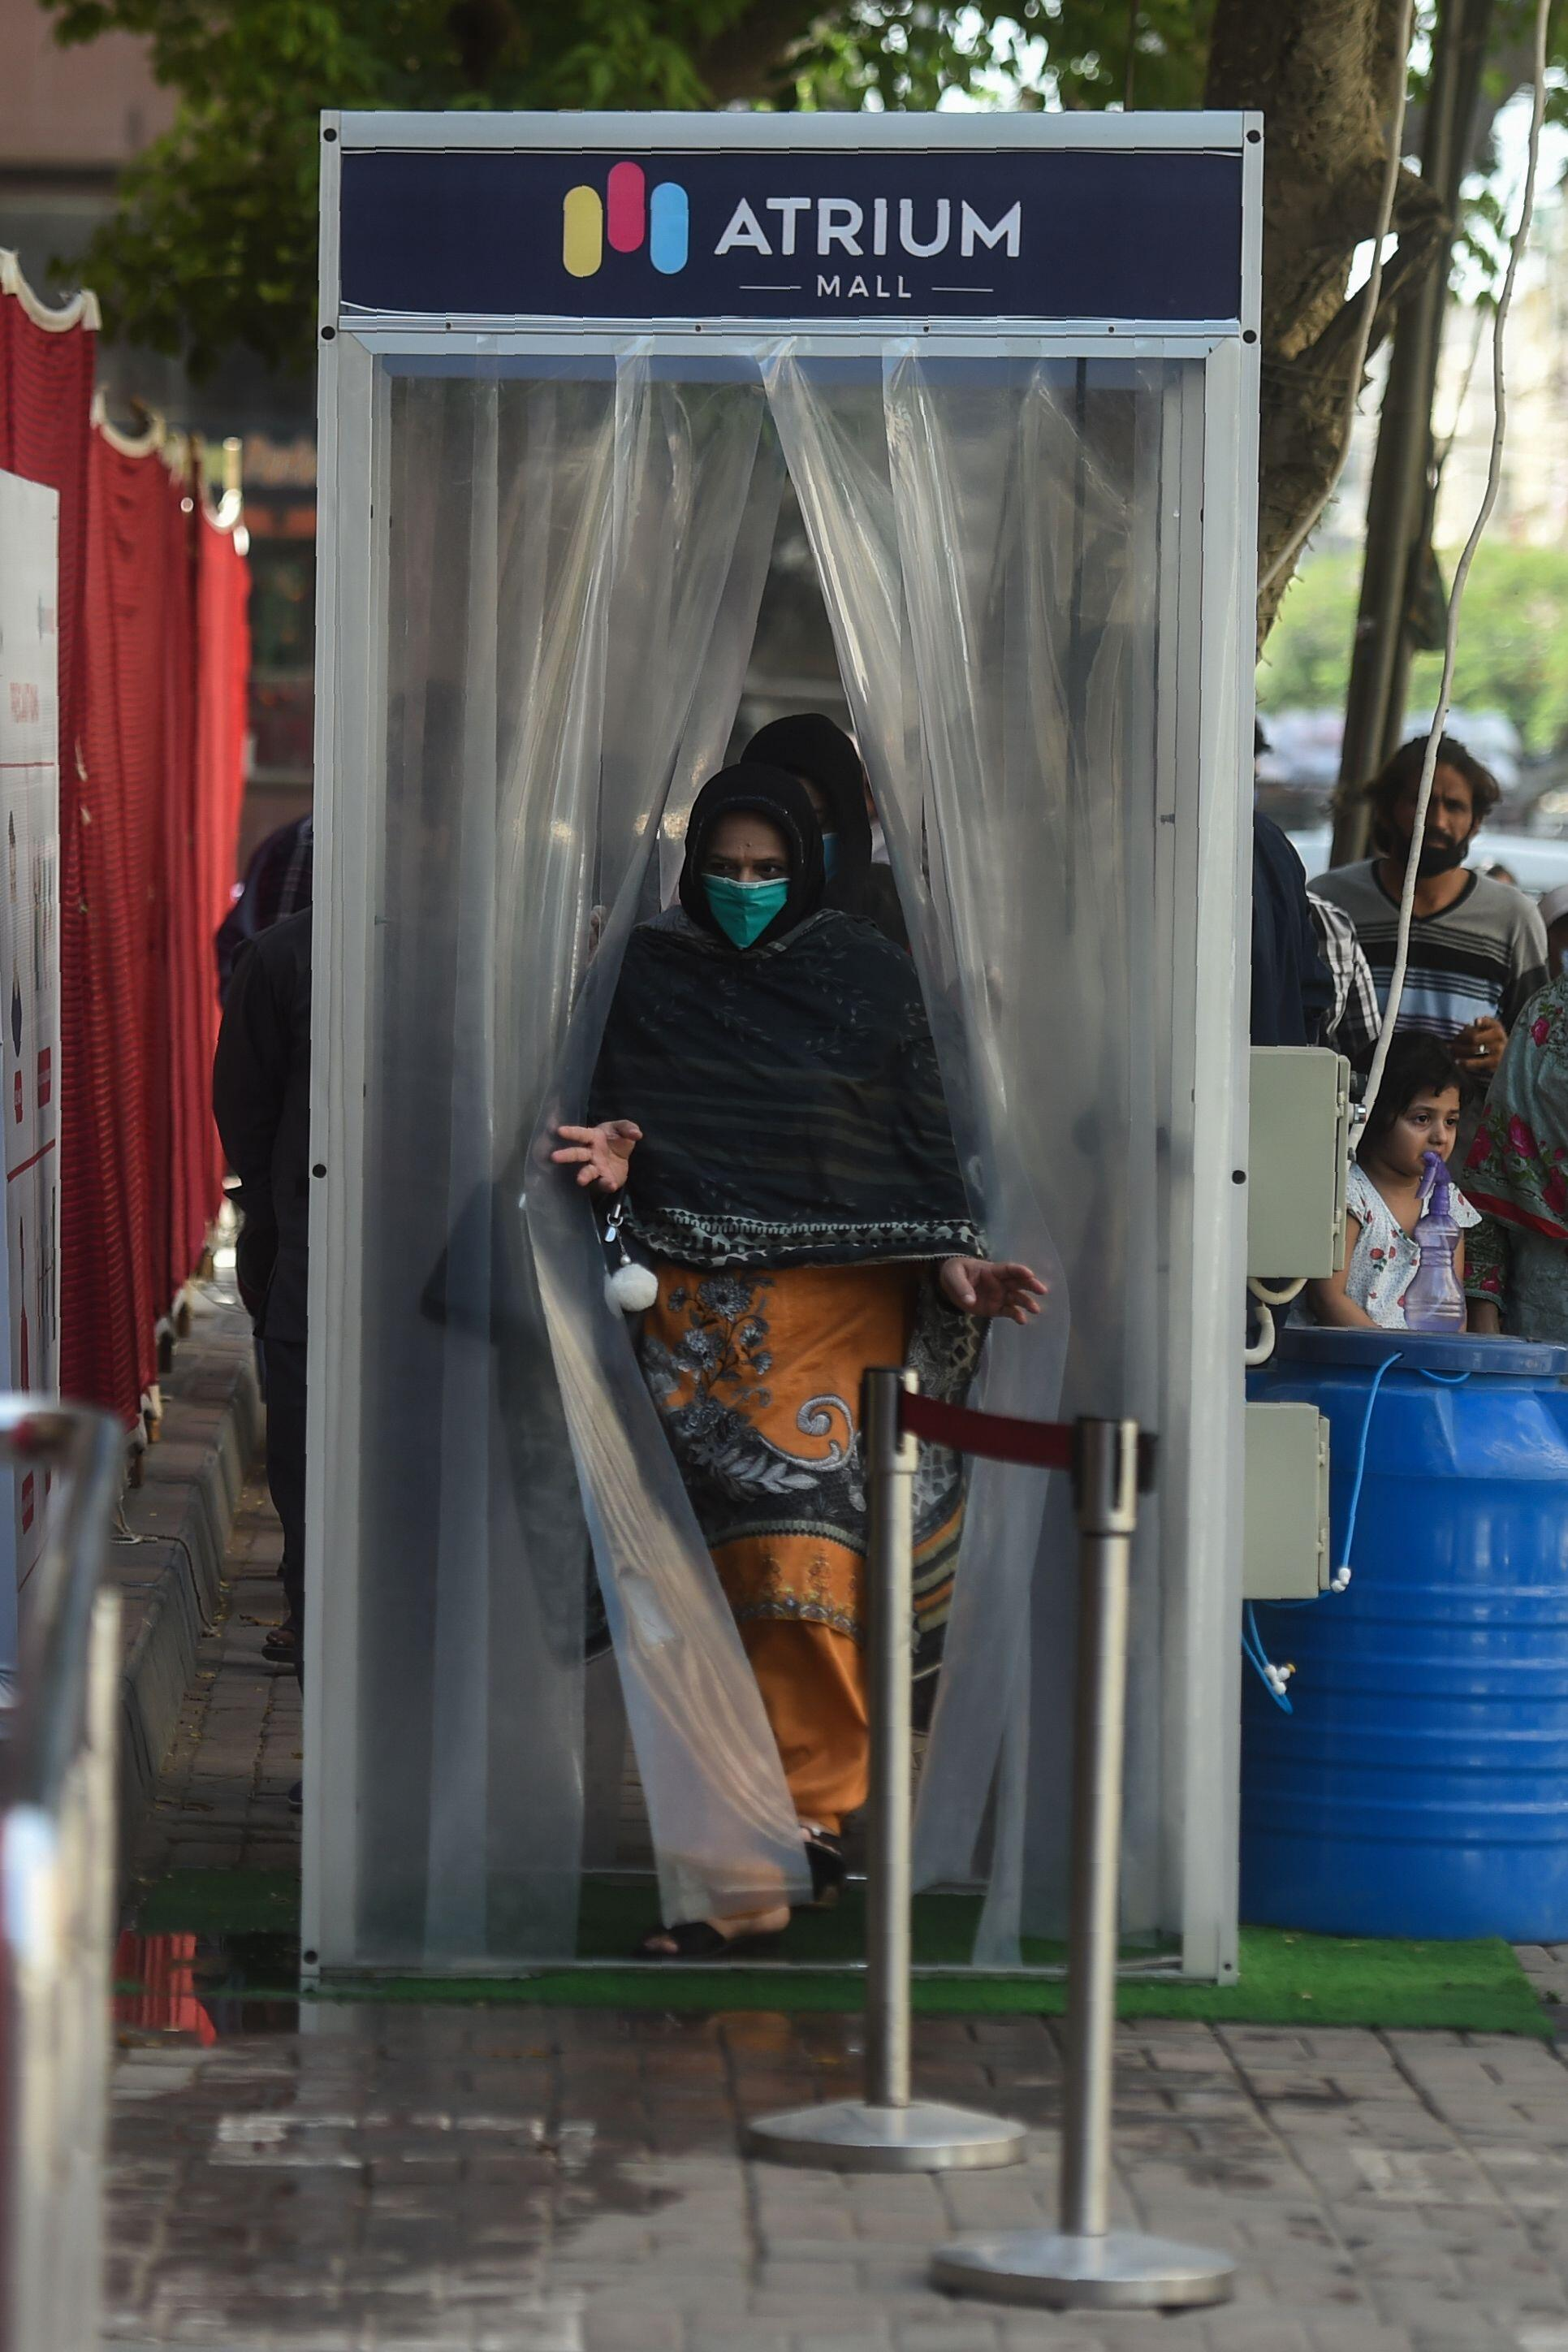 Pakistan: Getting disinfected before shopping